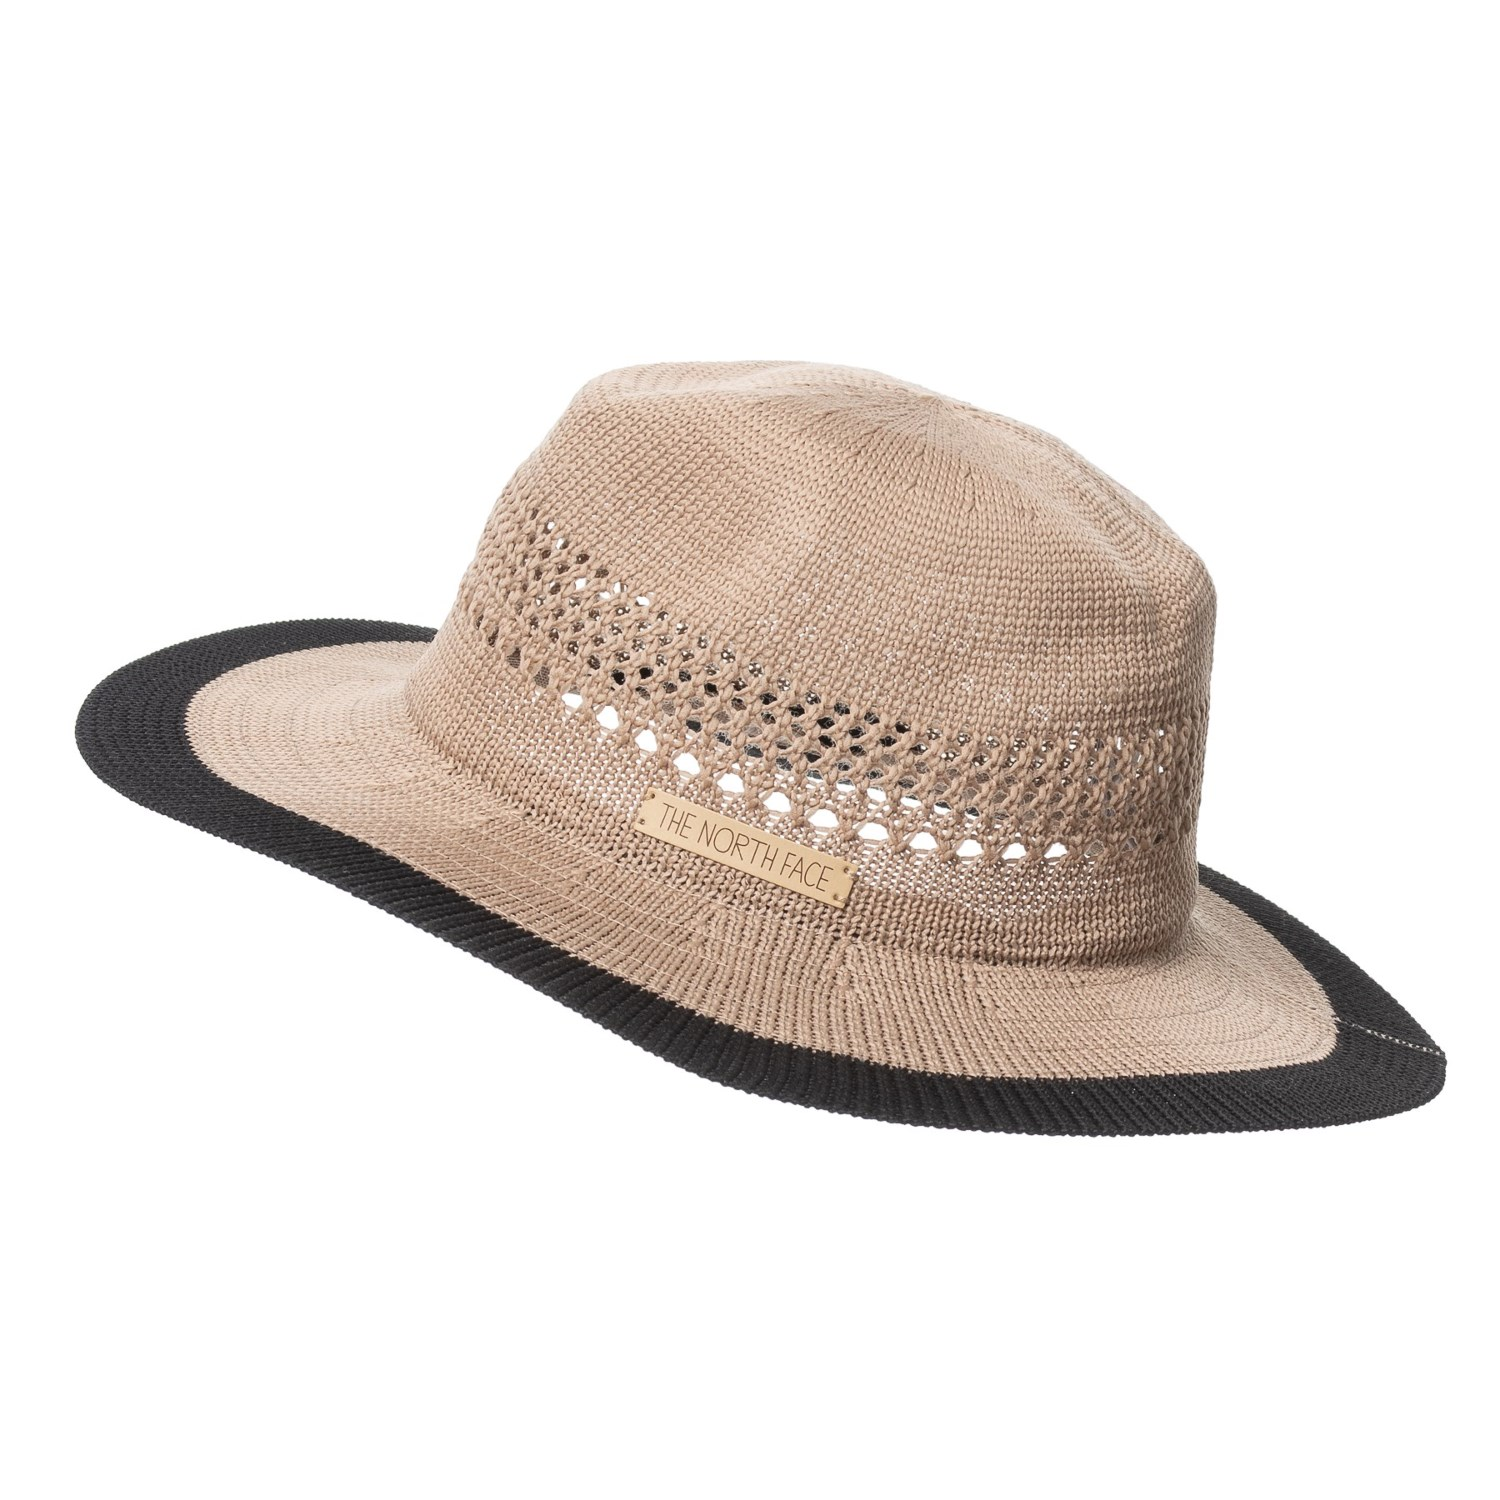 b75bfbd44bf The North Face Packable Panama Hat (For Women) in Kelp Tan Tnf Black ...